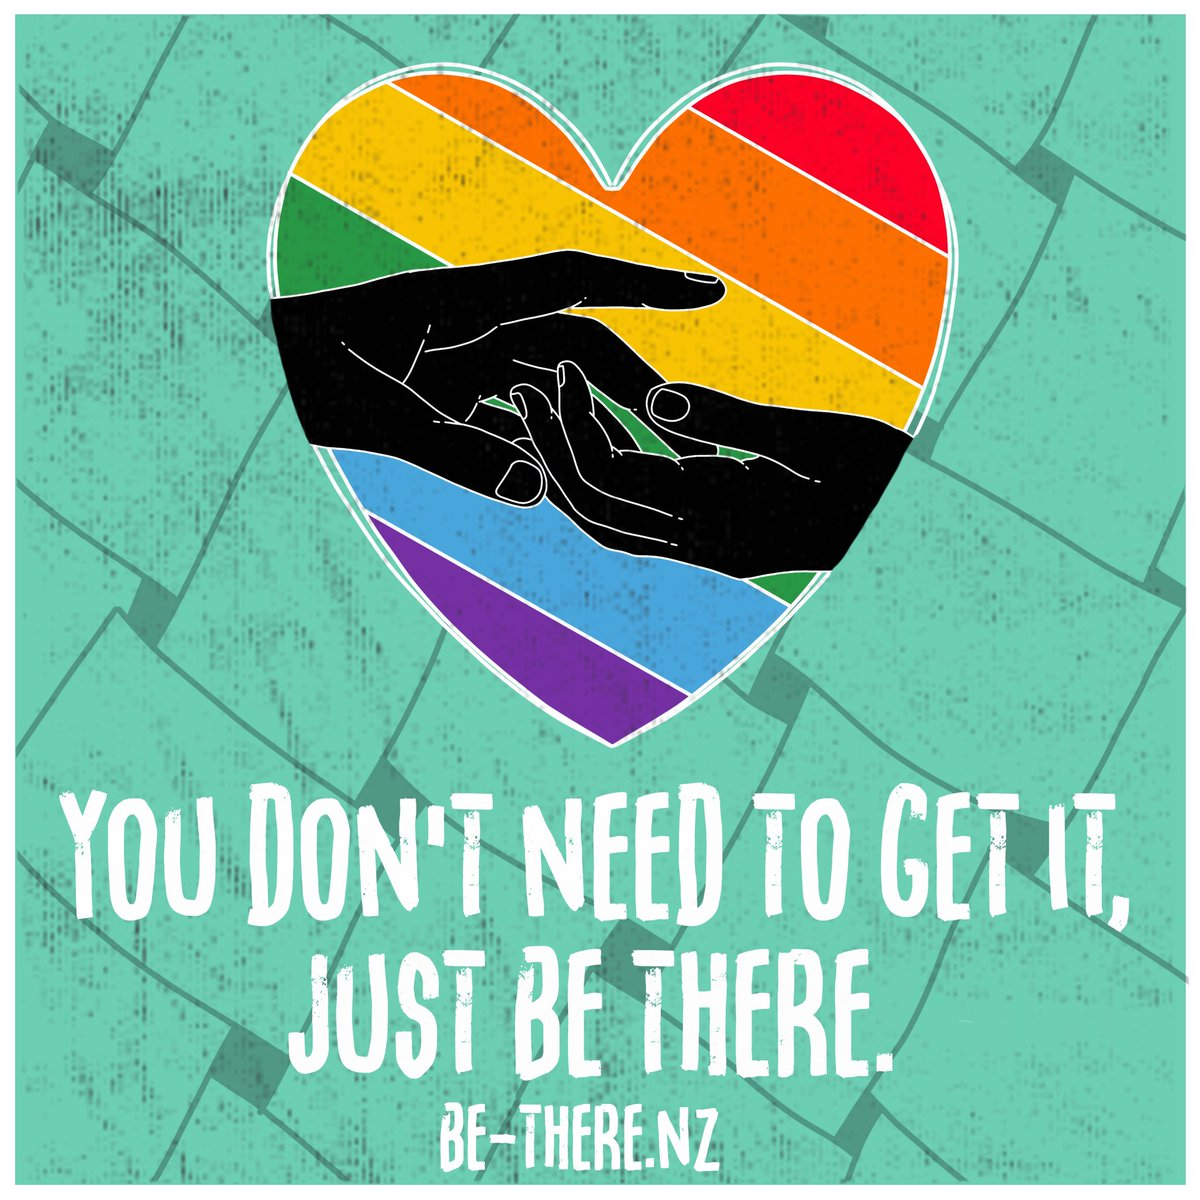 This week the Youth Sector Rainbow Collective is excited to announce the launch of the Be There campaign.  Be There is about supporting and educating the whānau of rainbow, gender and sex diverse youth by telling them that they don't have to get it, they just have to be there. https://t.co/0vJPMer005